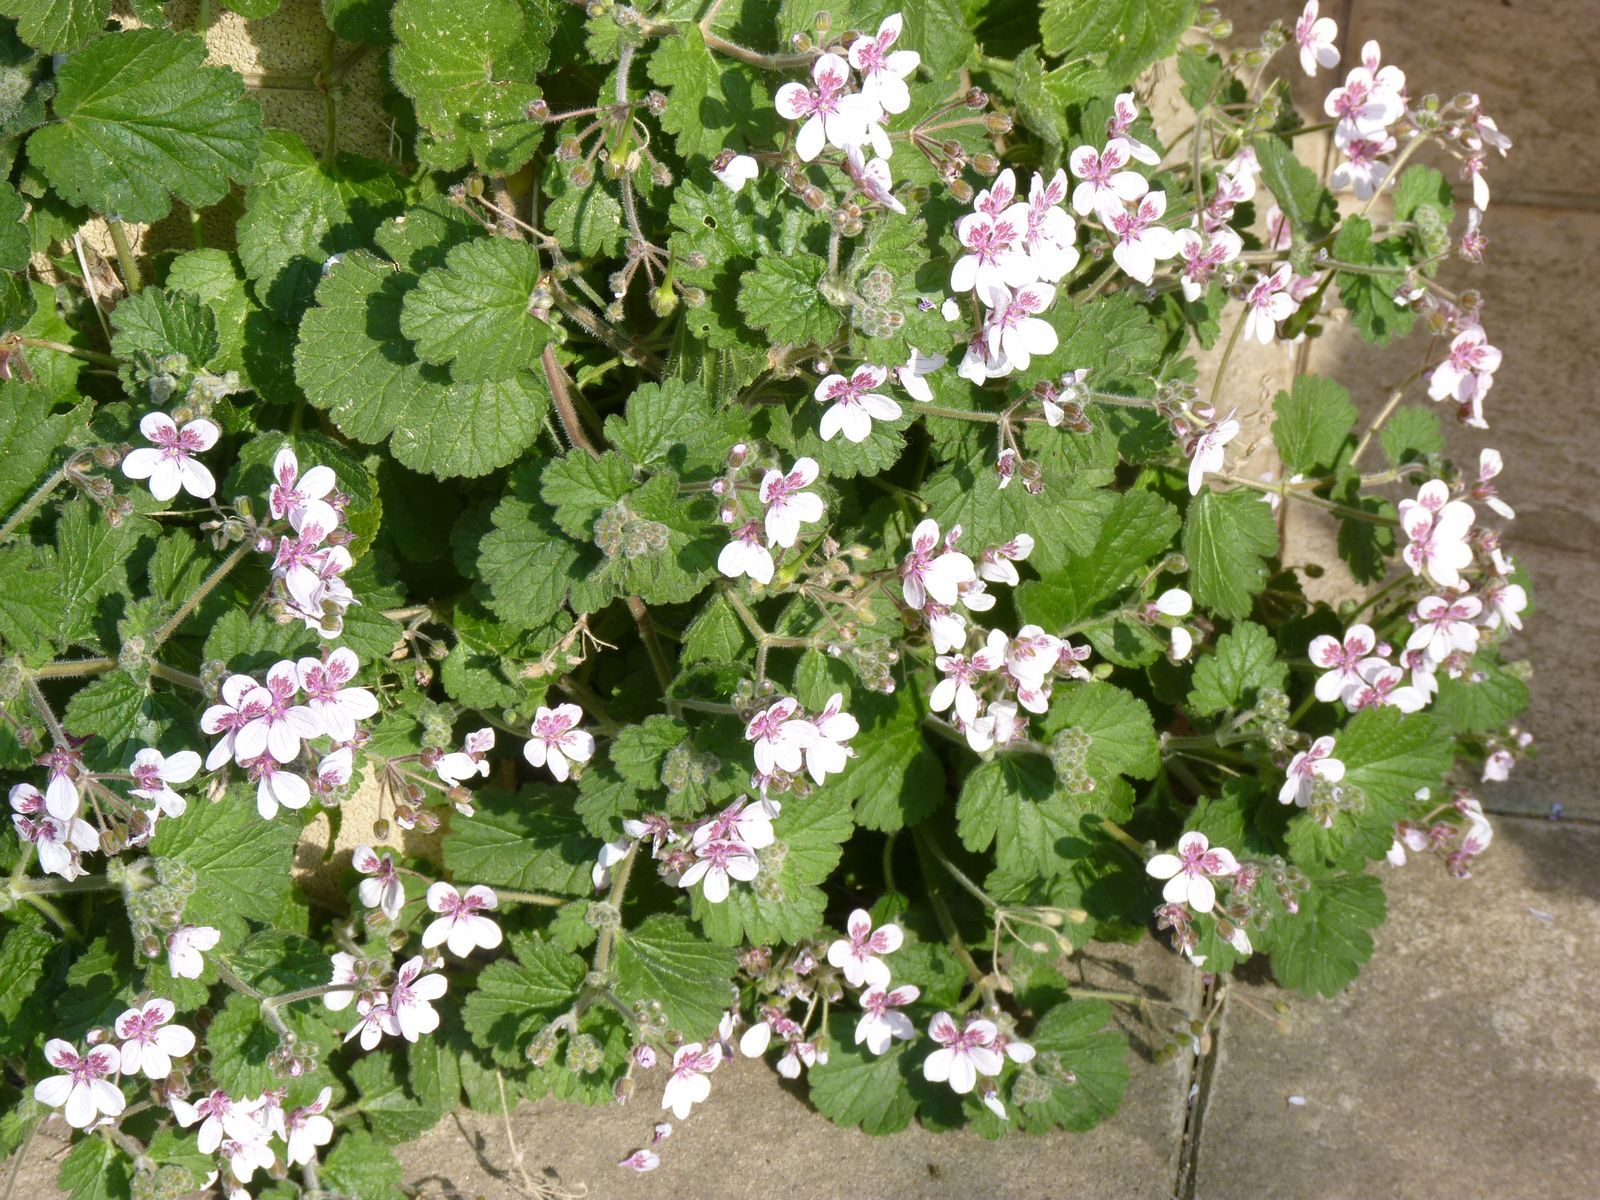 Erodium pelargoniflorum